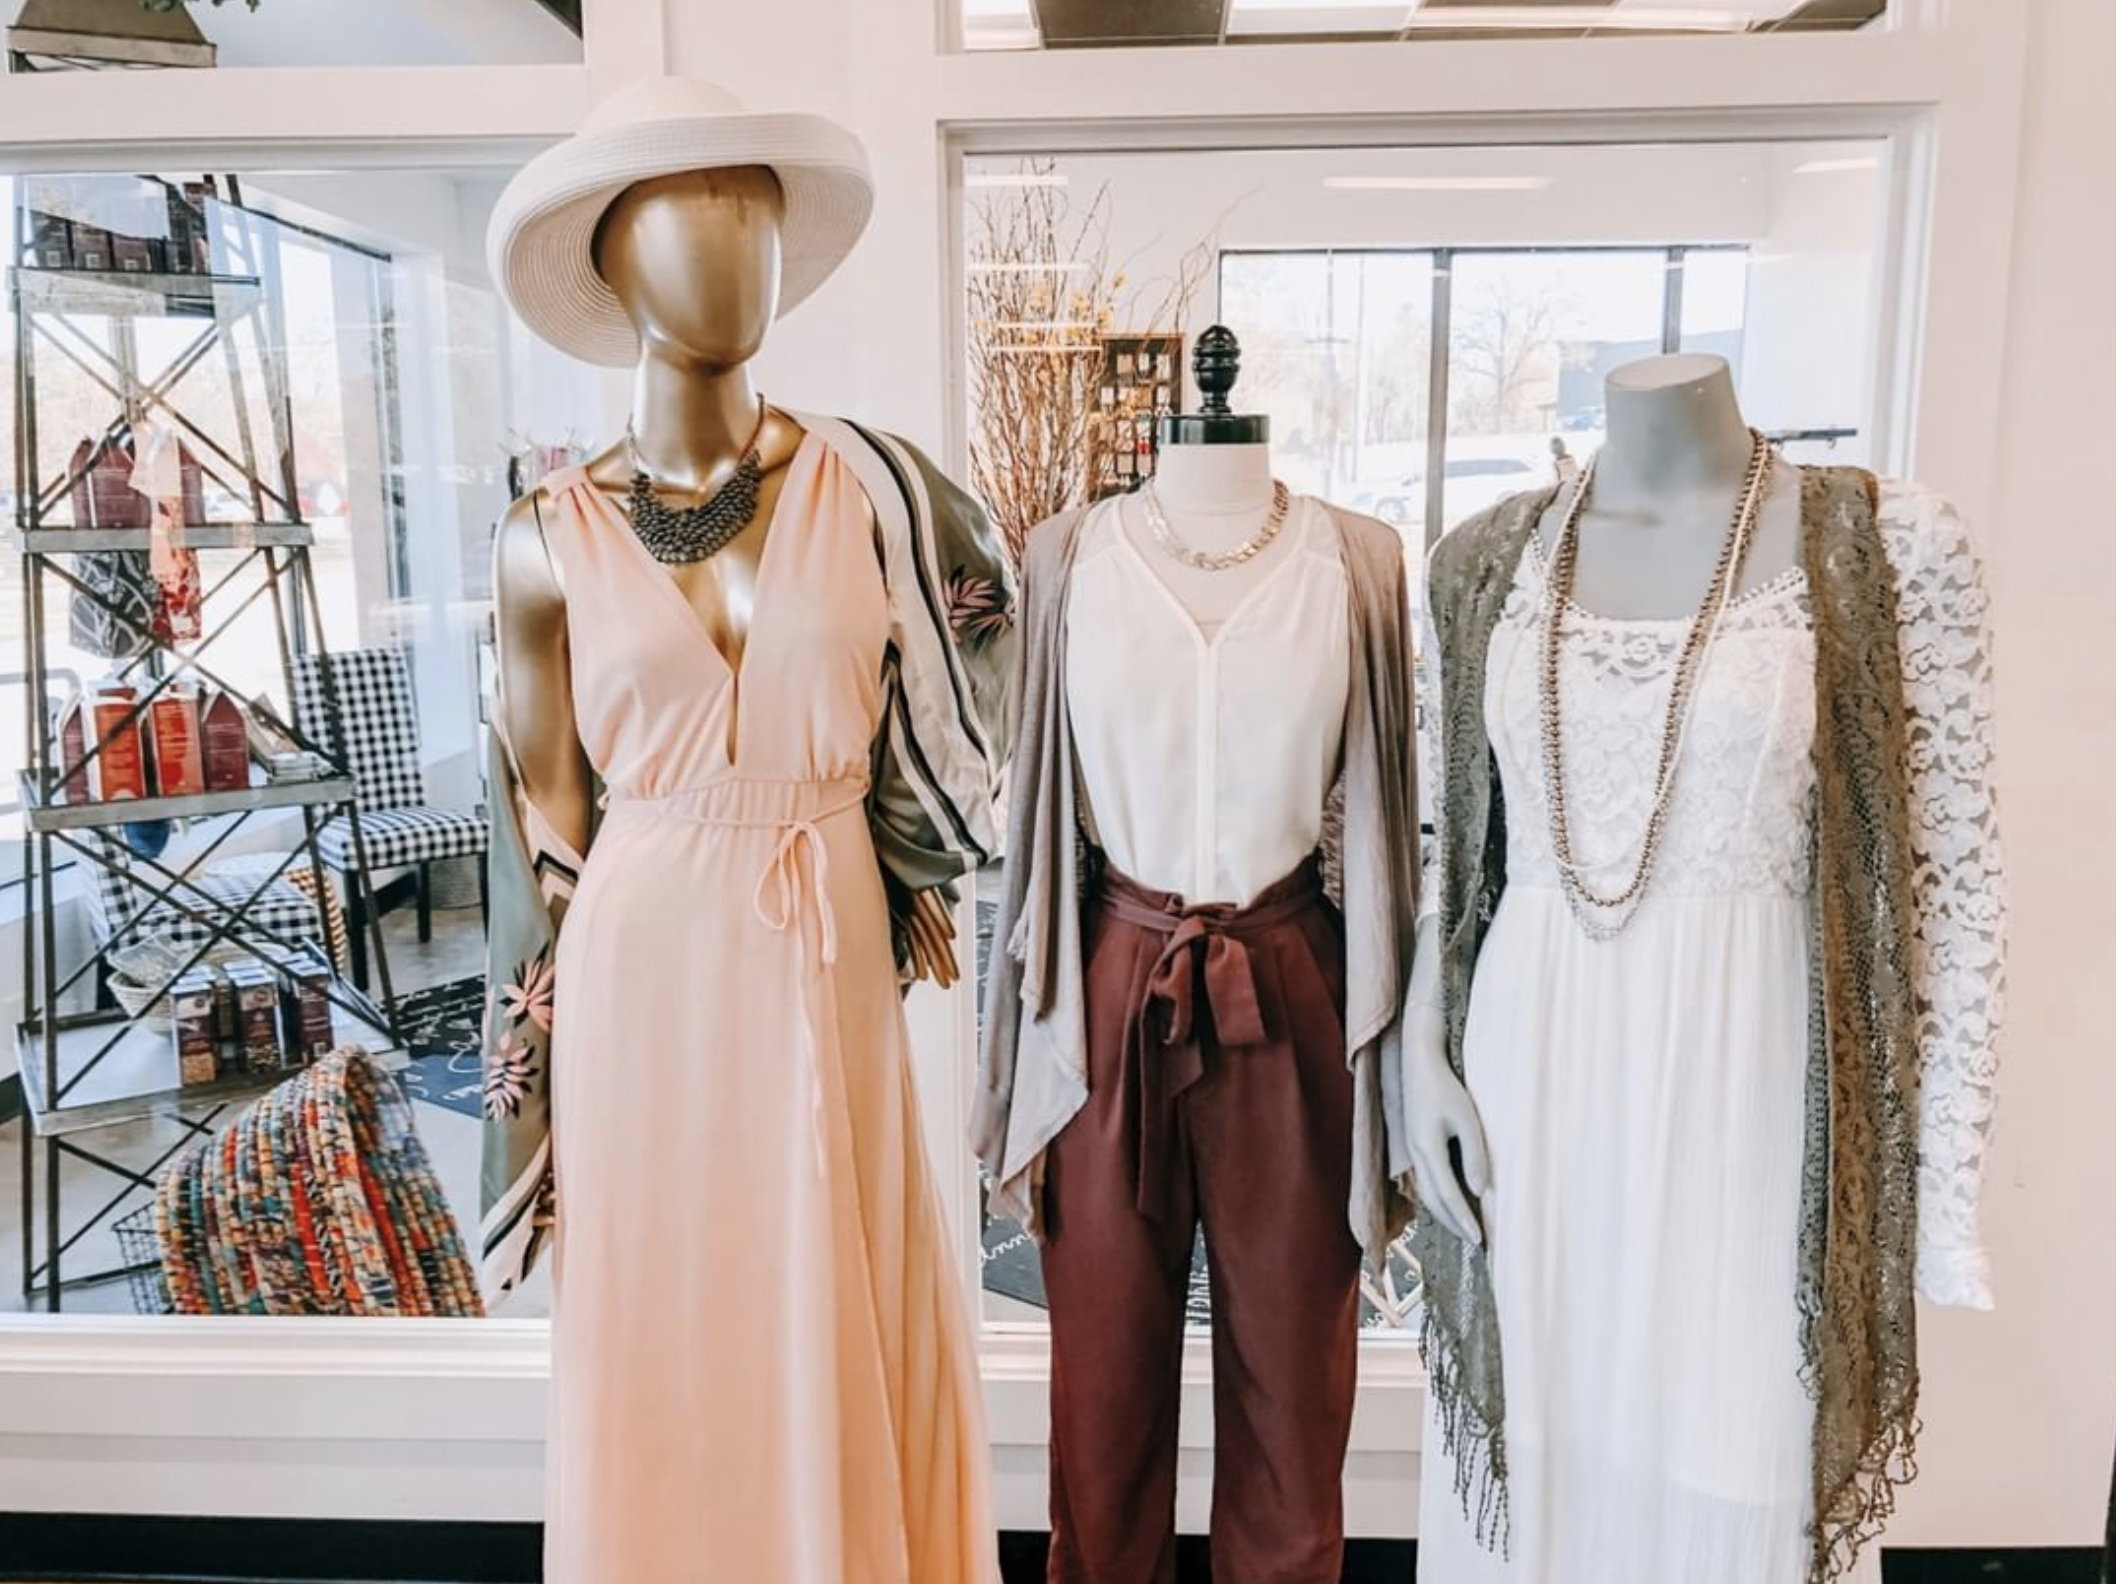 Shop at Beautiful Lives Boutique - Shop, donate, and volunteer at Beautiful Lives Thrift Store. BL donates a portion of their proceeds from sales to Ladies of Grace each month. BL also provides clothing and support to women upon their release from prison.